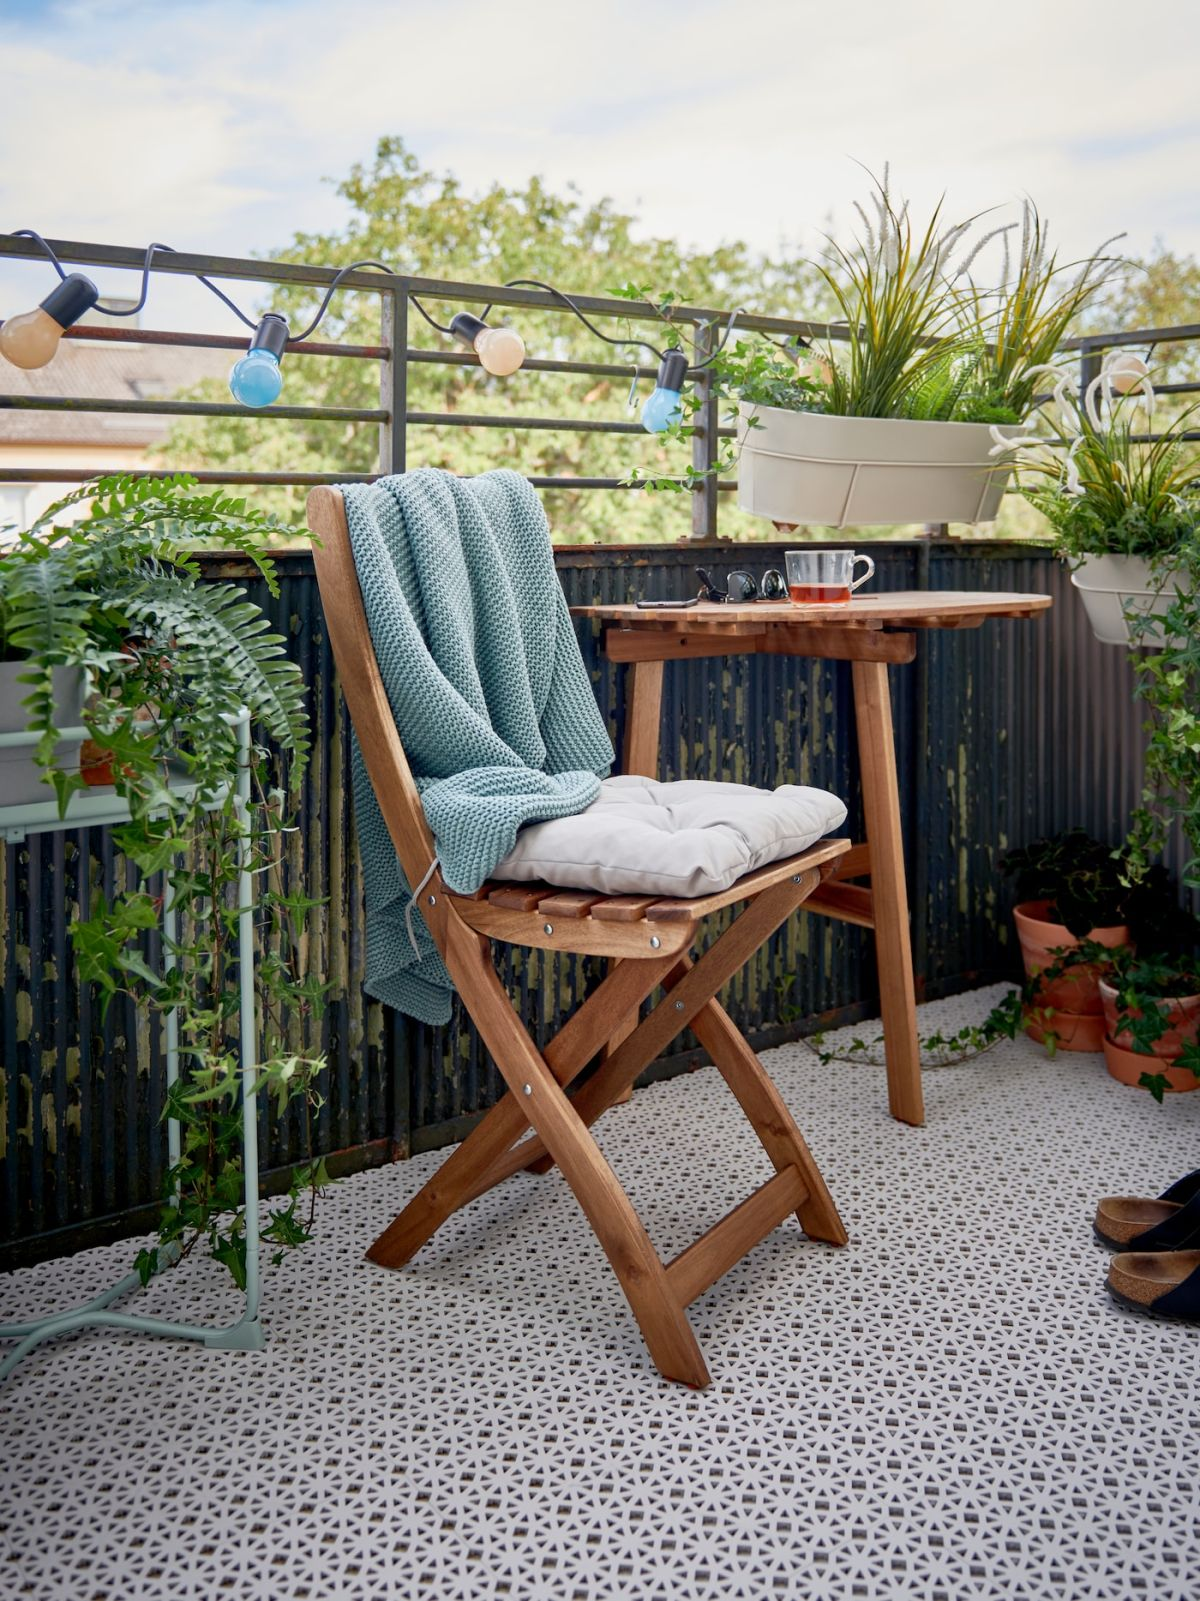 28 Balcony Ideas Decorate Small Apartment Balconies That Want Privacy Too Real Homes